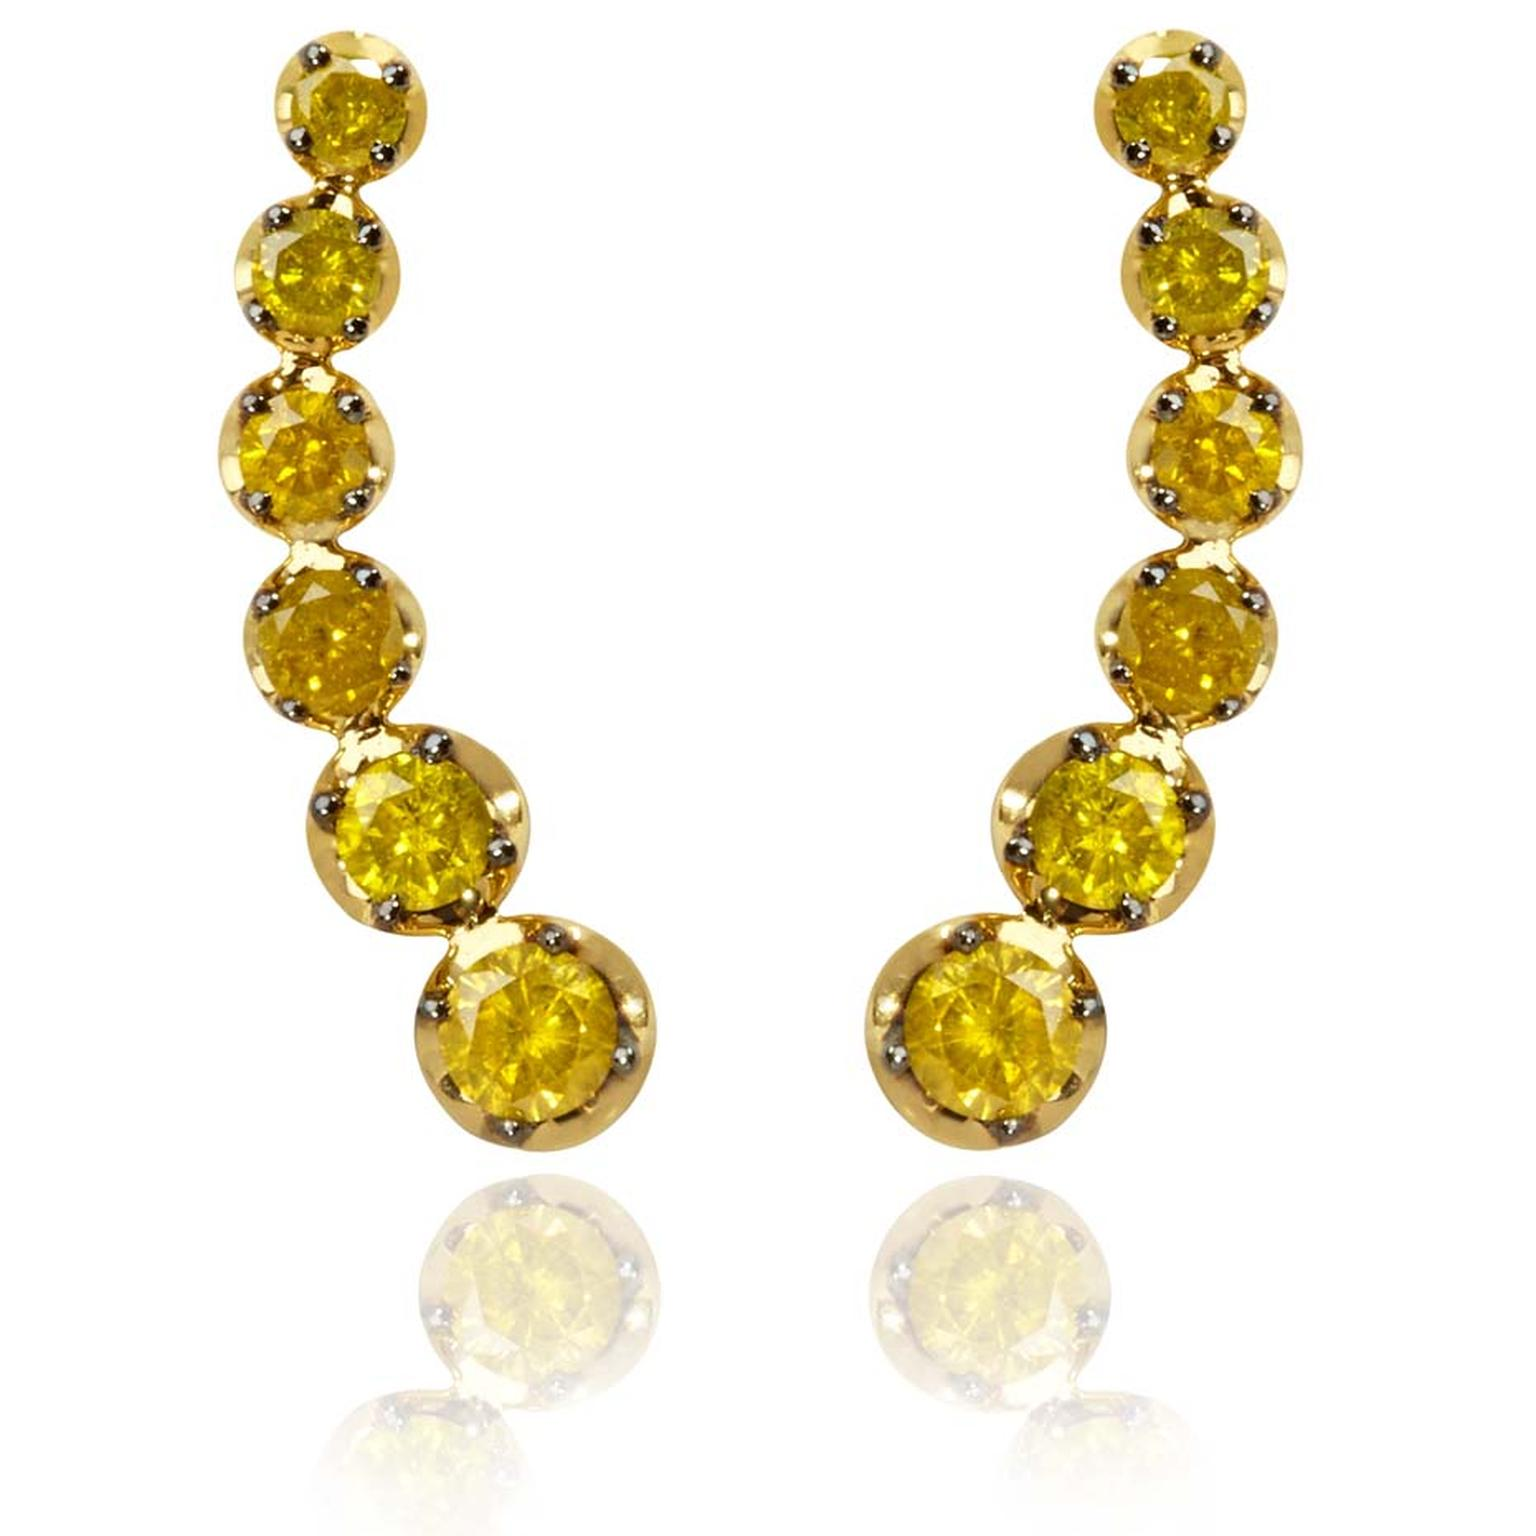 Annoushka Dusty Diamonds ear pins in yellow gold, set with six yellow diamonds in descending order, can be positioned on the ear in various different ways (£1,590; can be bought seperately).